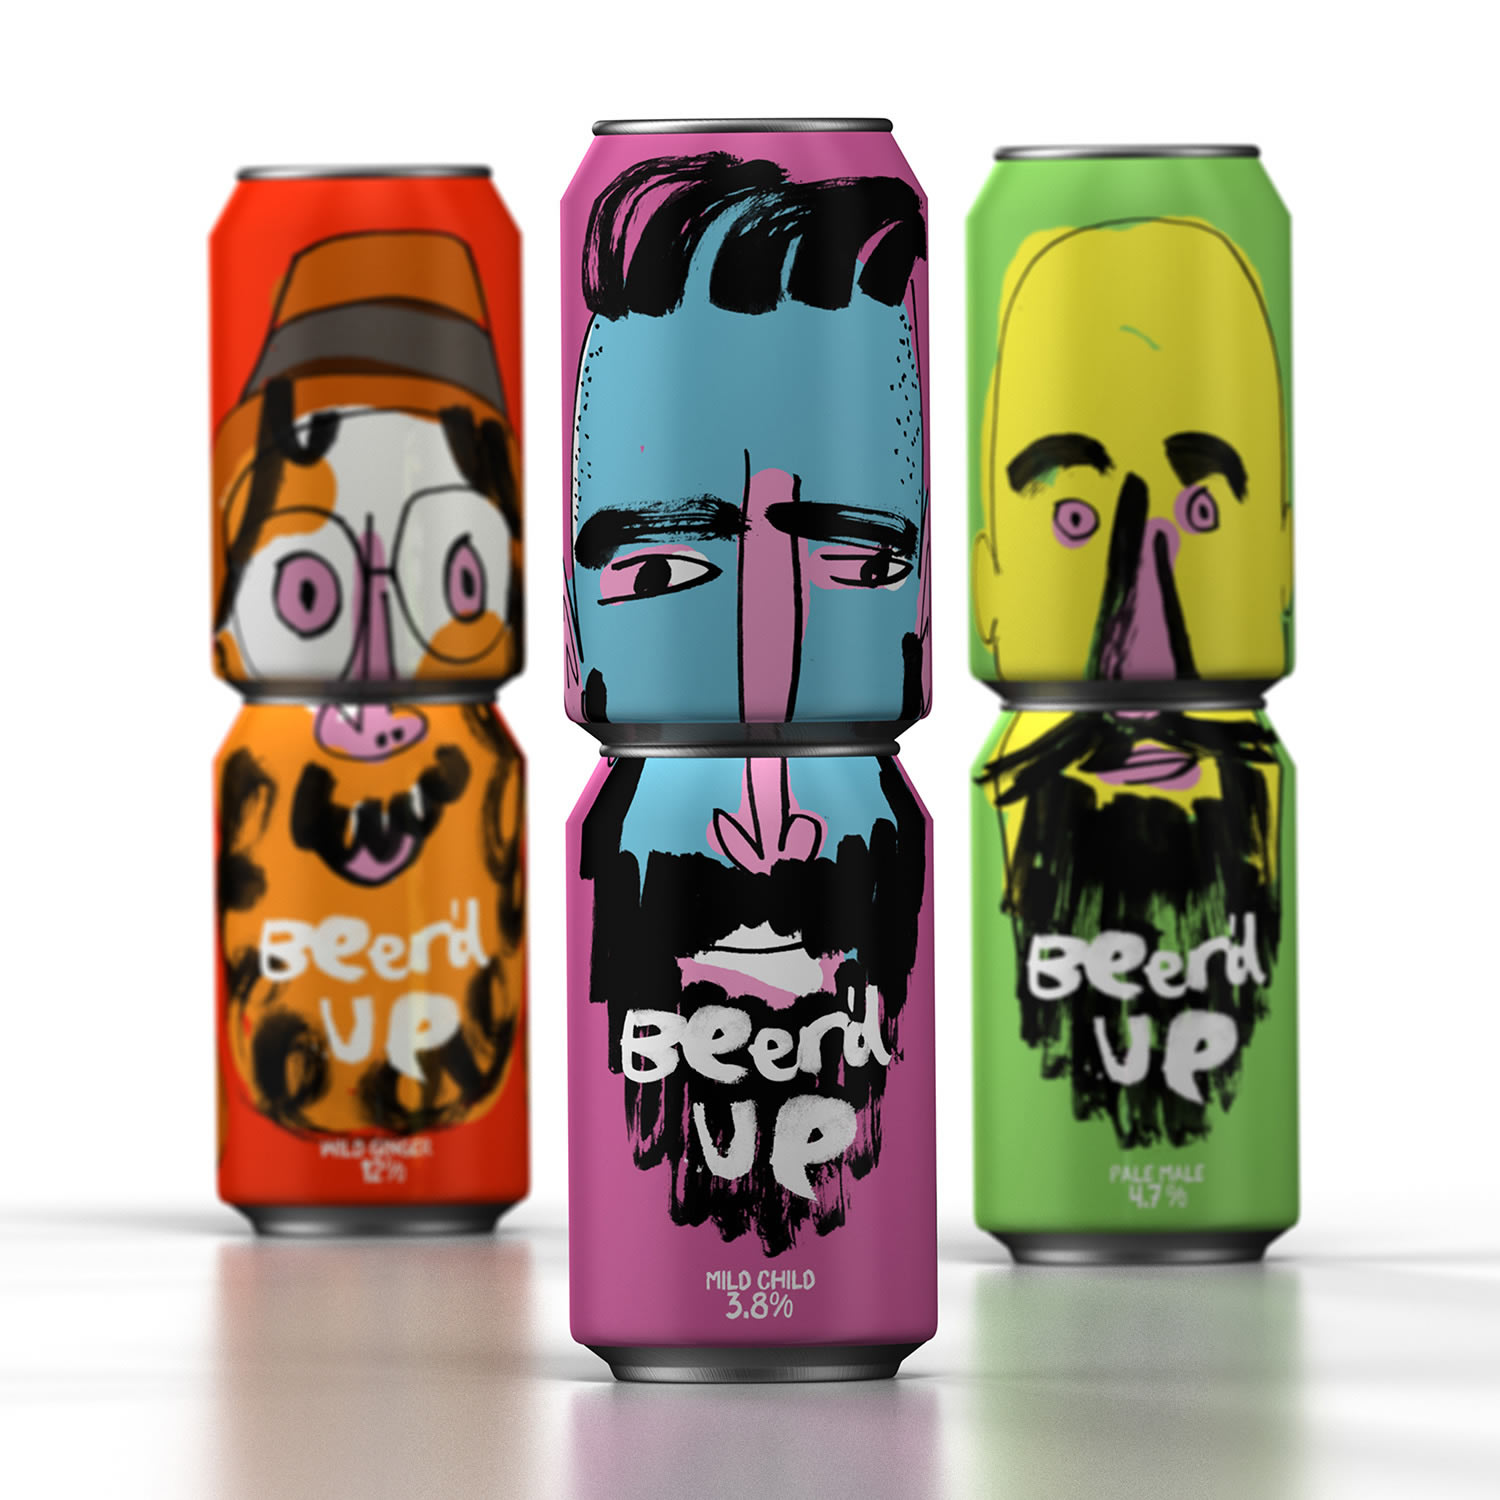 Beer'd Up Beer packaging by Springetts Brand Design Consultants